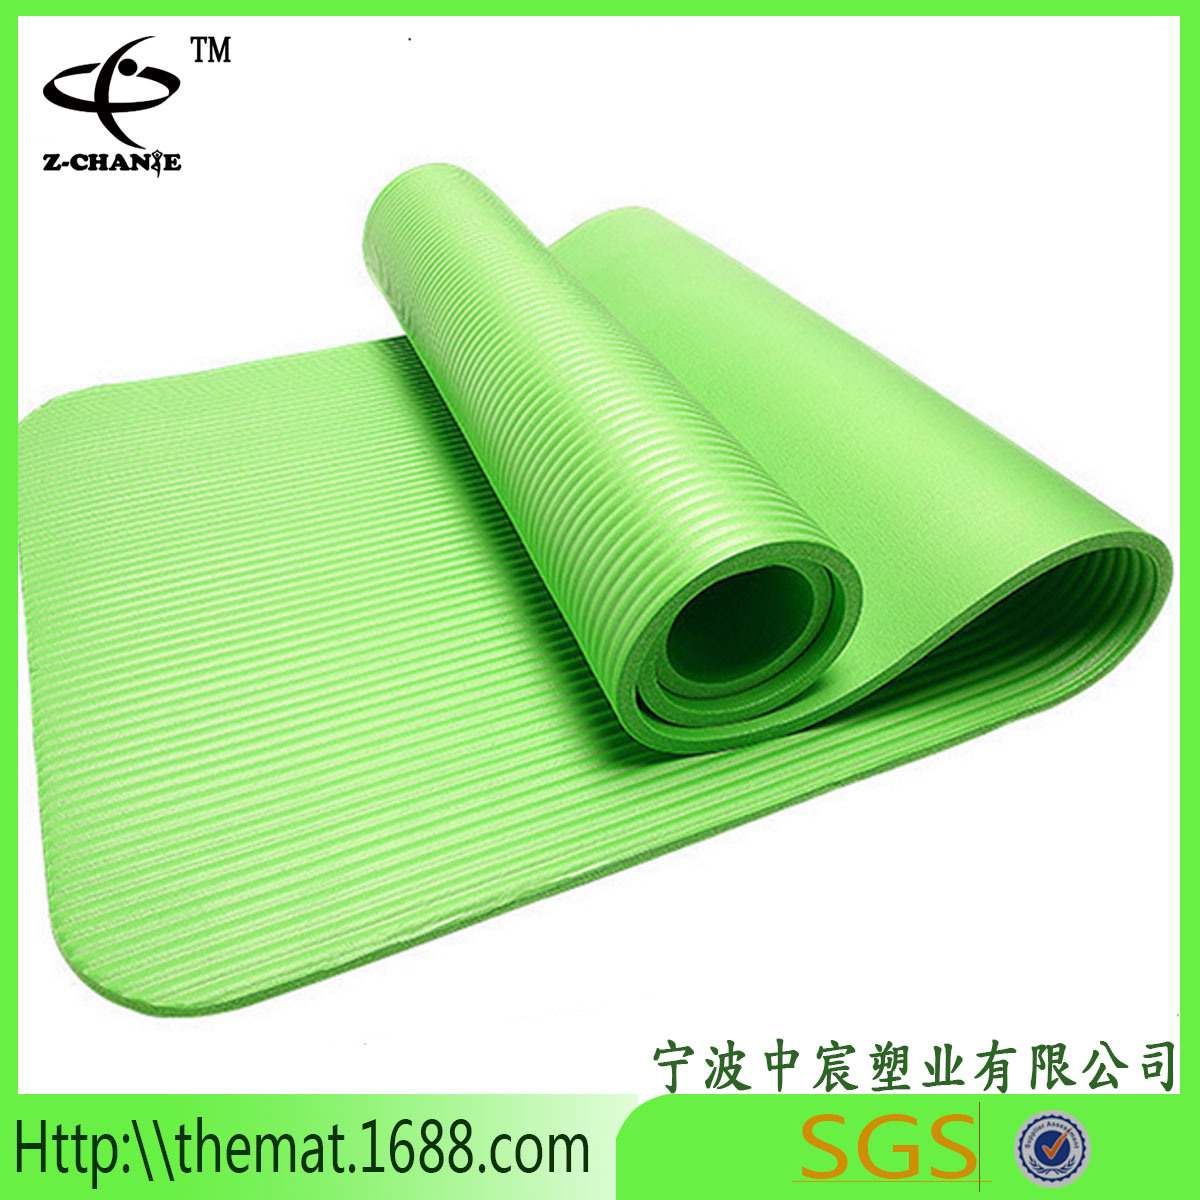 shop product best vinyl bi choice fitness folding rakuten gymnastic mat products mats pad landing w bestchoiceproducts thick exercise